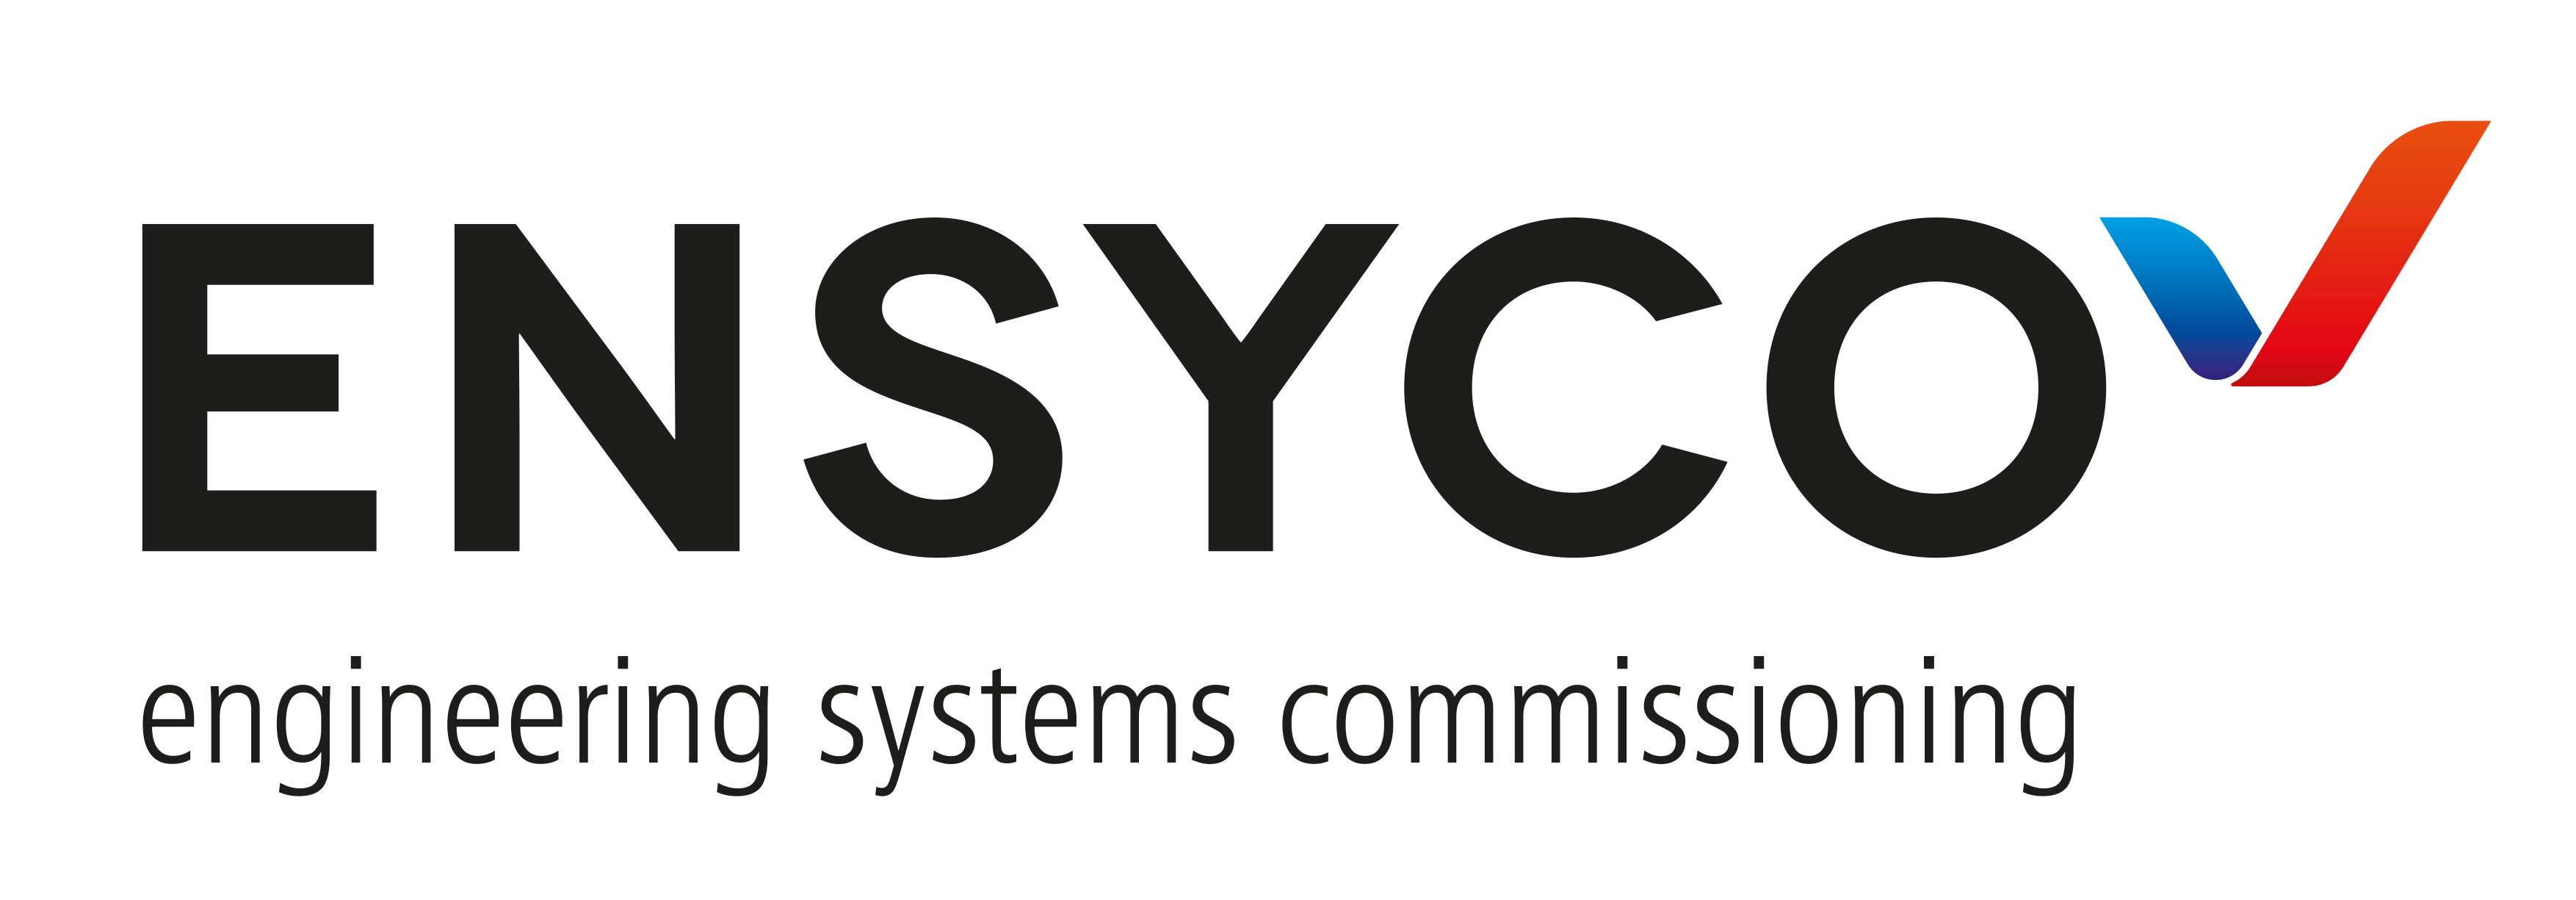 ENSYCO – engineering systems commissioning